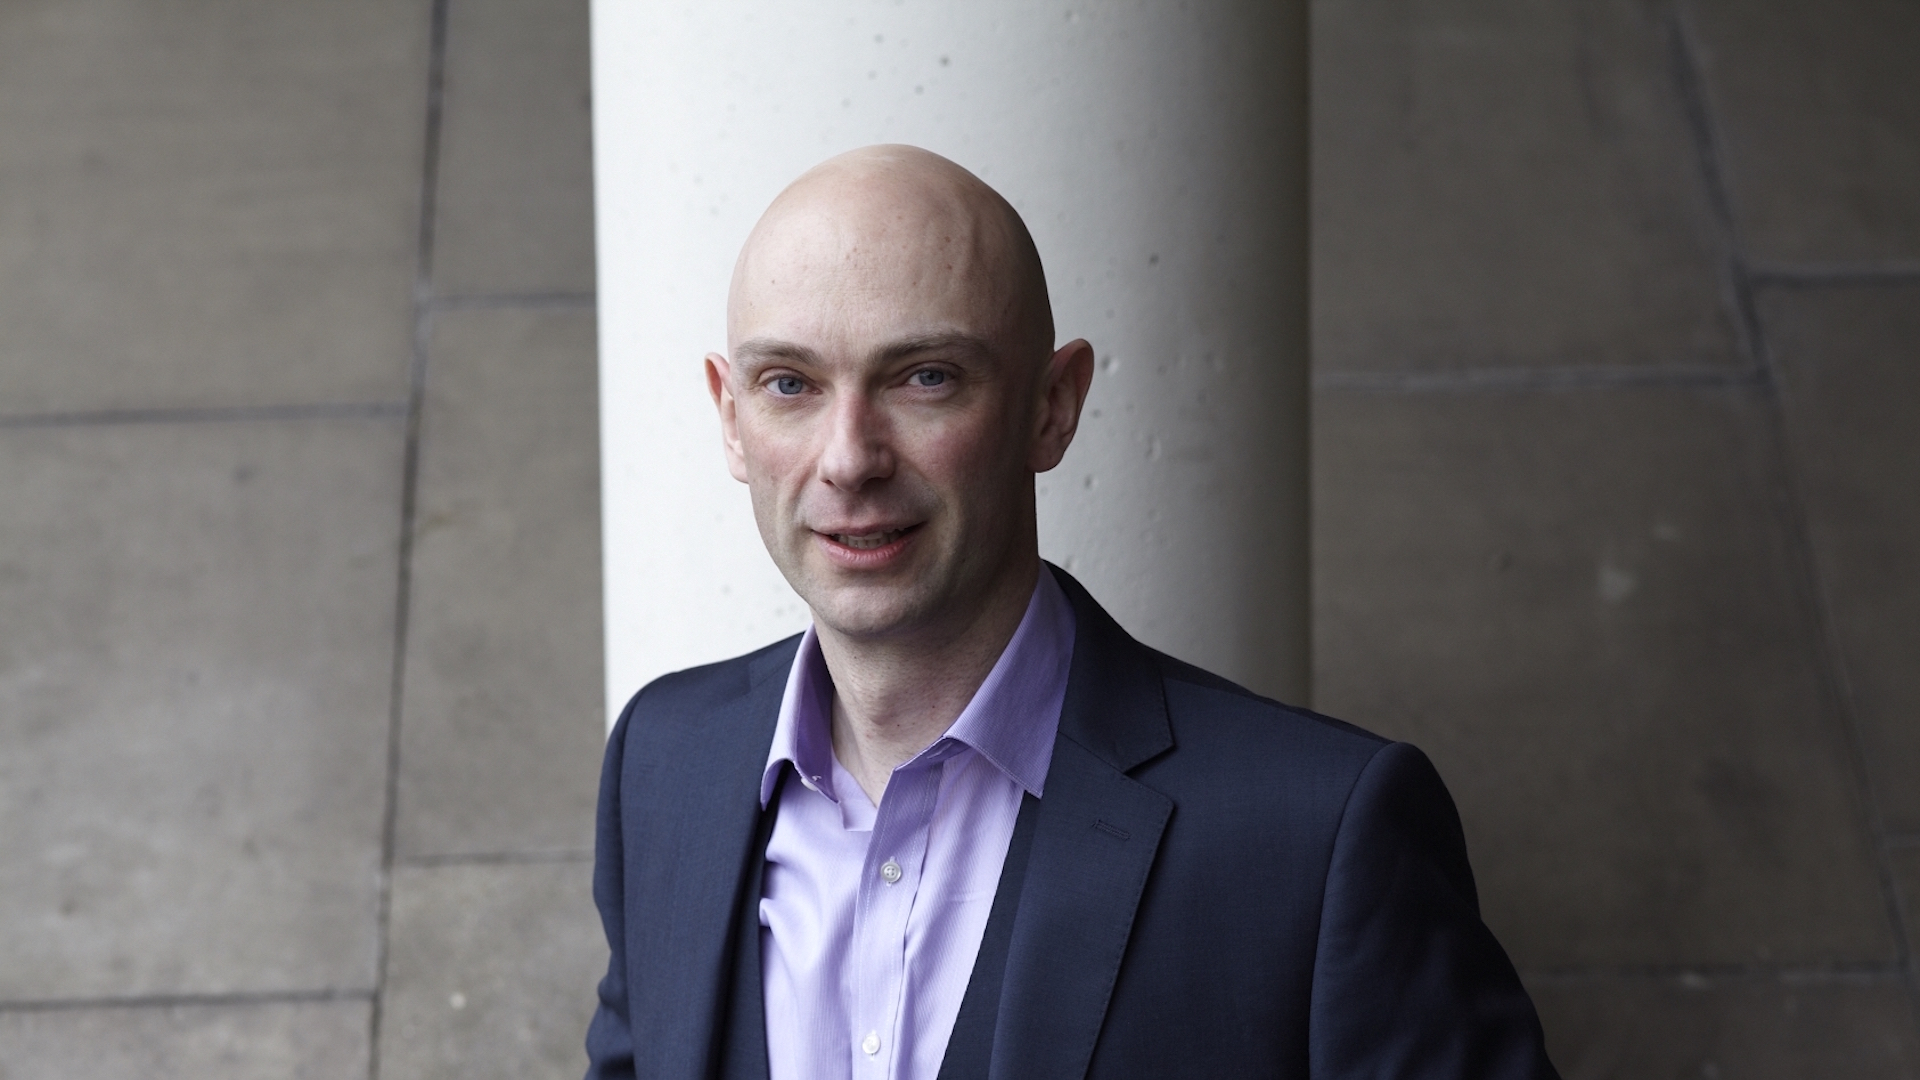 Shaun Attwood - Reformed Drug Kingpin: The Man Who Faced 200 Years In America's Deadliest Prison